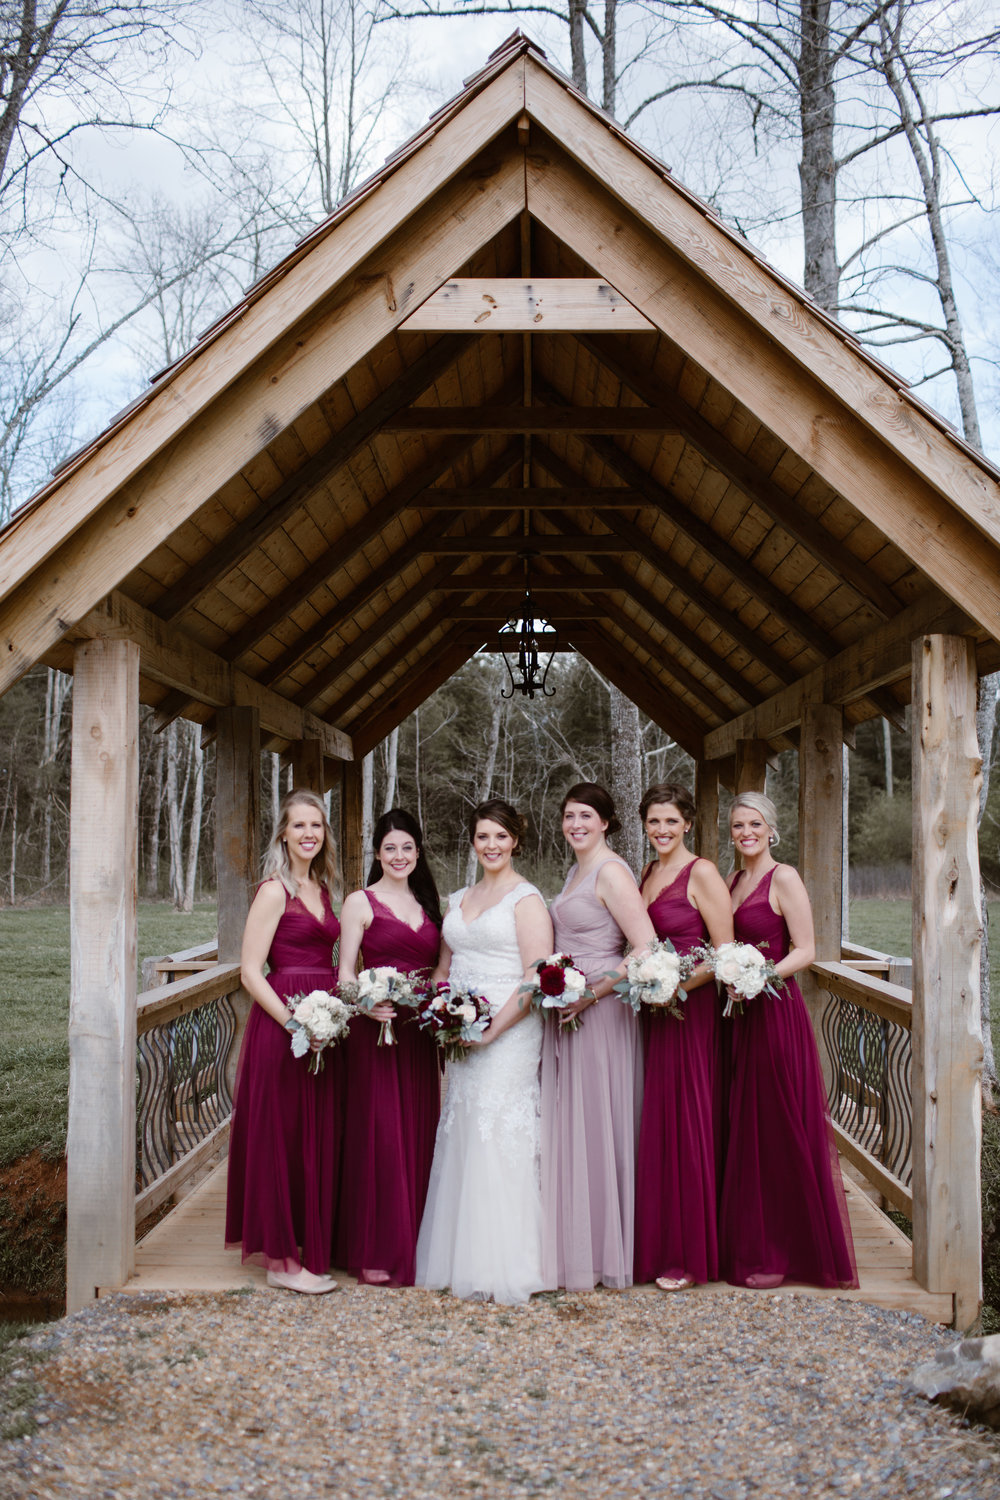 Maroon bridesmaid Dresses - A Burgundy + Bronze Ramble Creek Fall Wedding - Erin Morrison Photography